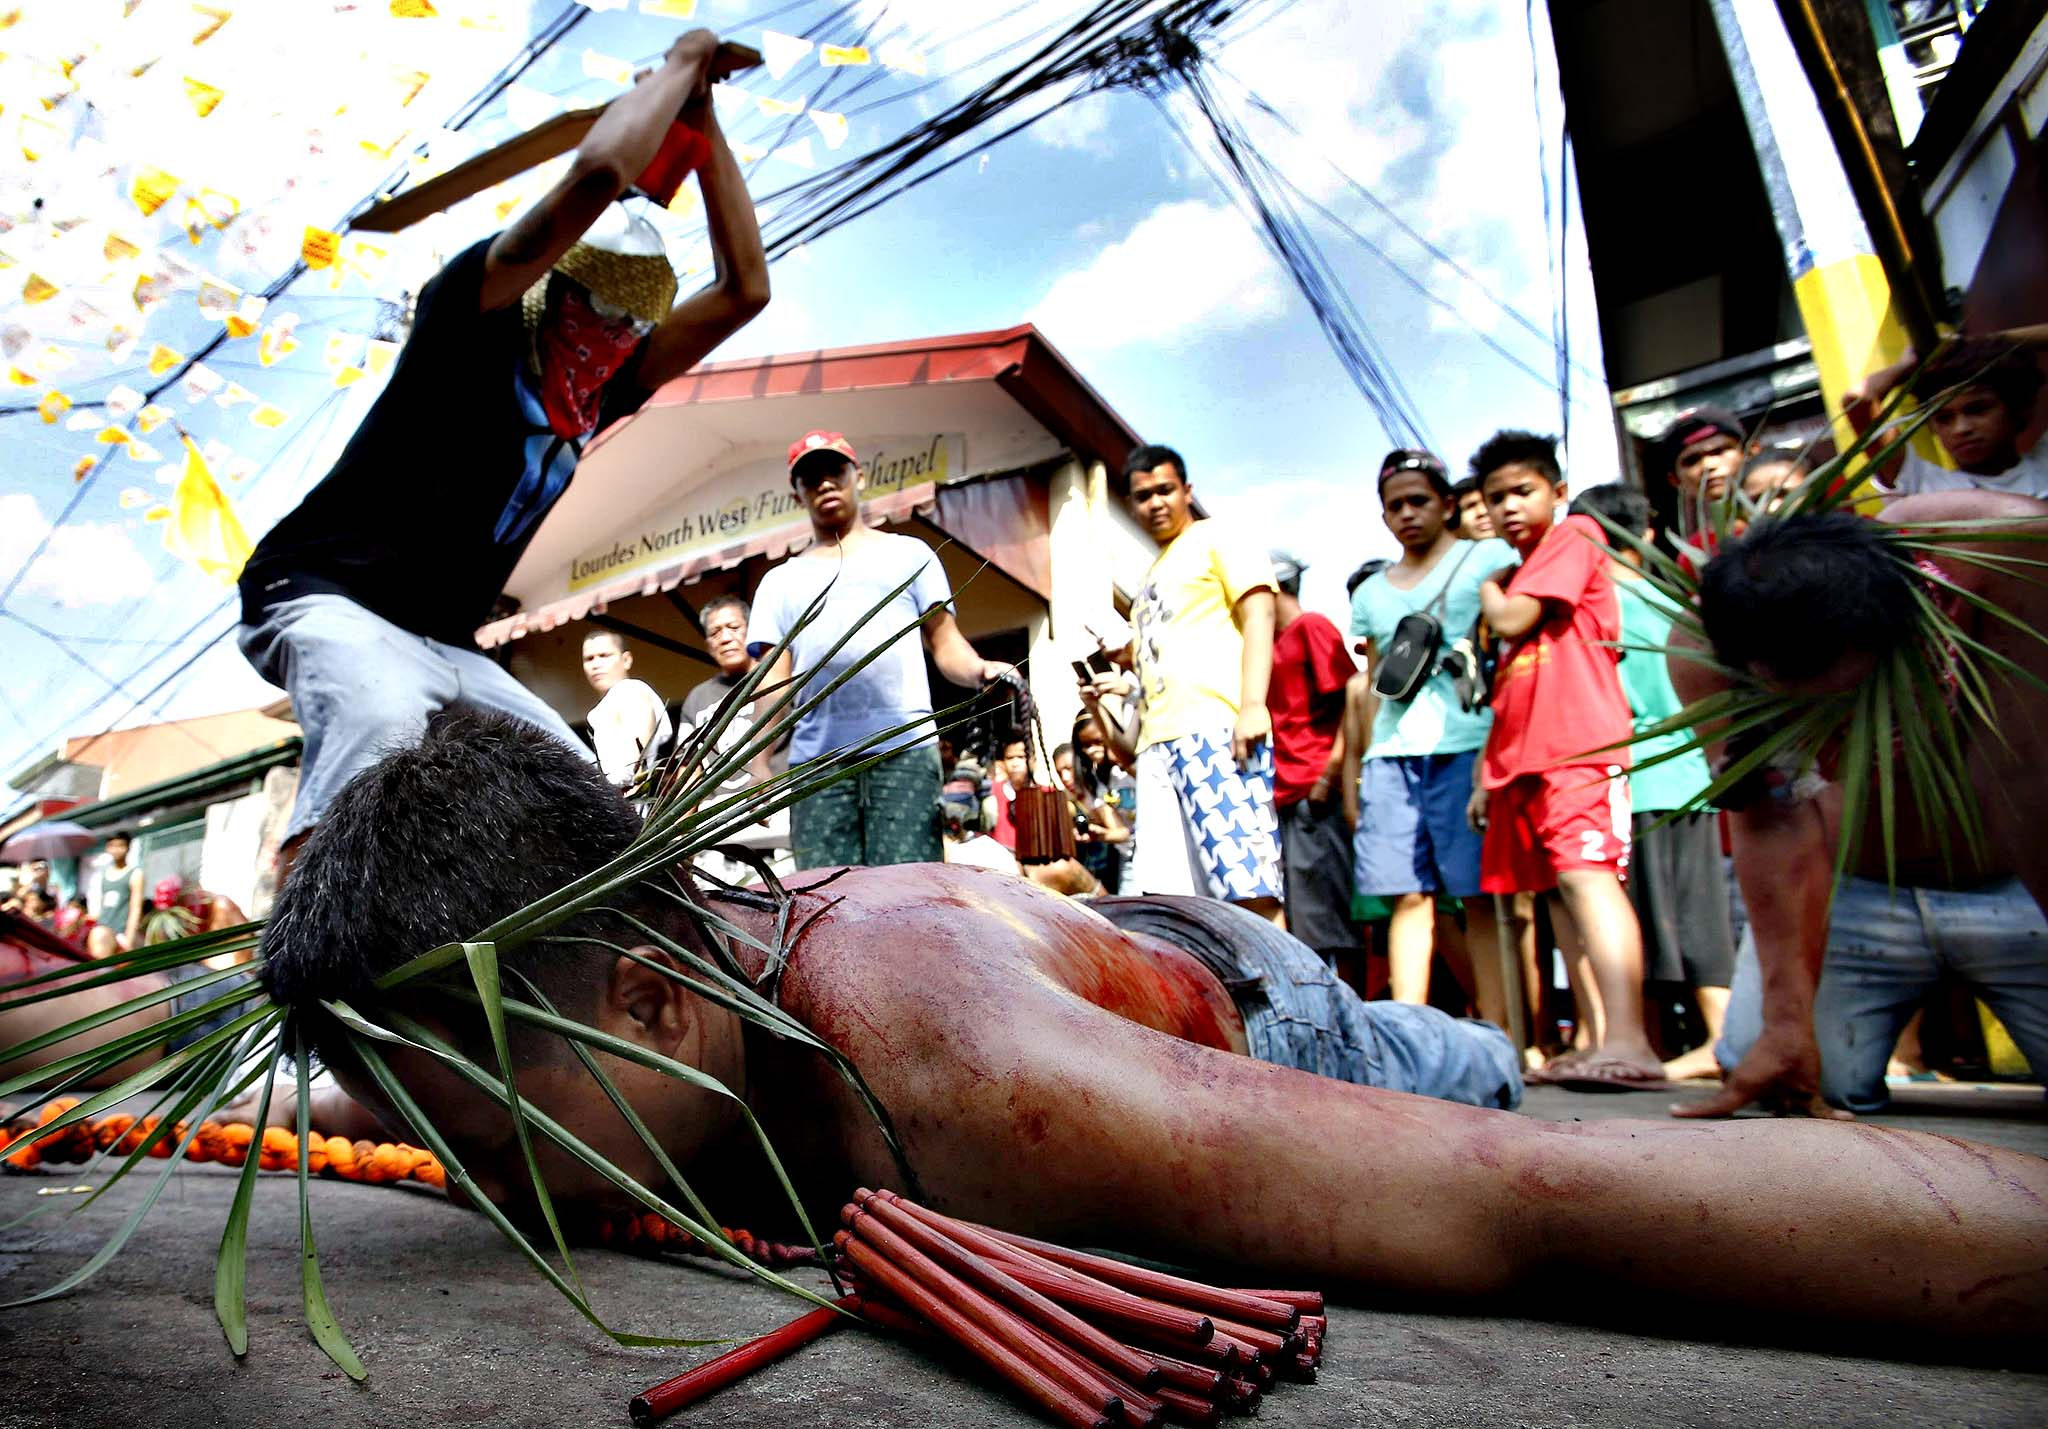 Man whips a devotee during a Maundy Thursday ritual by penitents to atone for sins in Angeles...A man whips a devotee during a Maundy Thursday ritual by penitents to atone for sins in Angeles, Pampanga north of Manila April 17, 2014. Flagellation is a form of religious discipline observed every lenten season by Catholic devotees in the Philippines